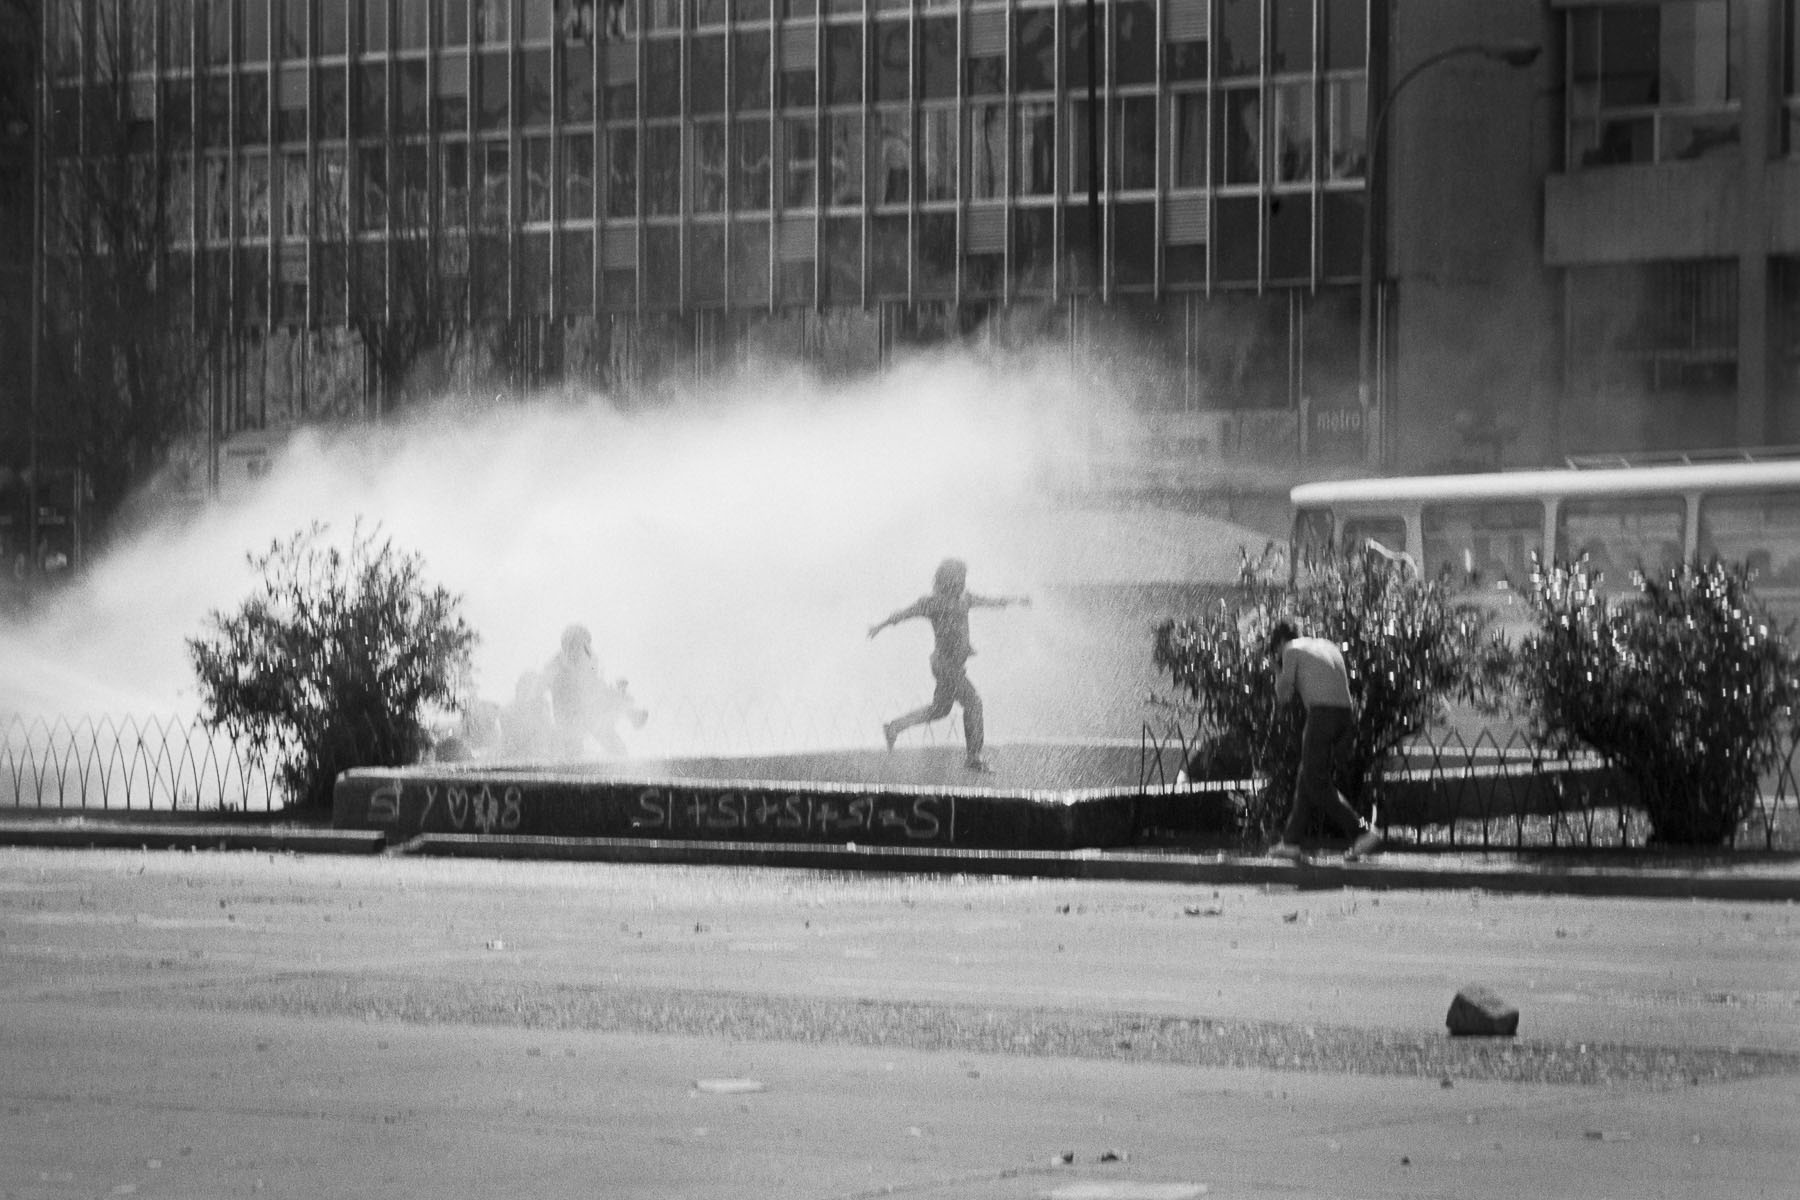 Anti-government demonstrators clash with police during plebiscite campaign vote in September 1988